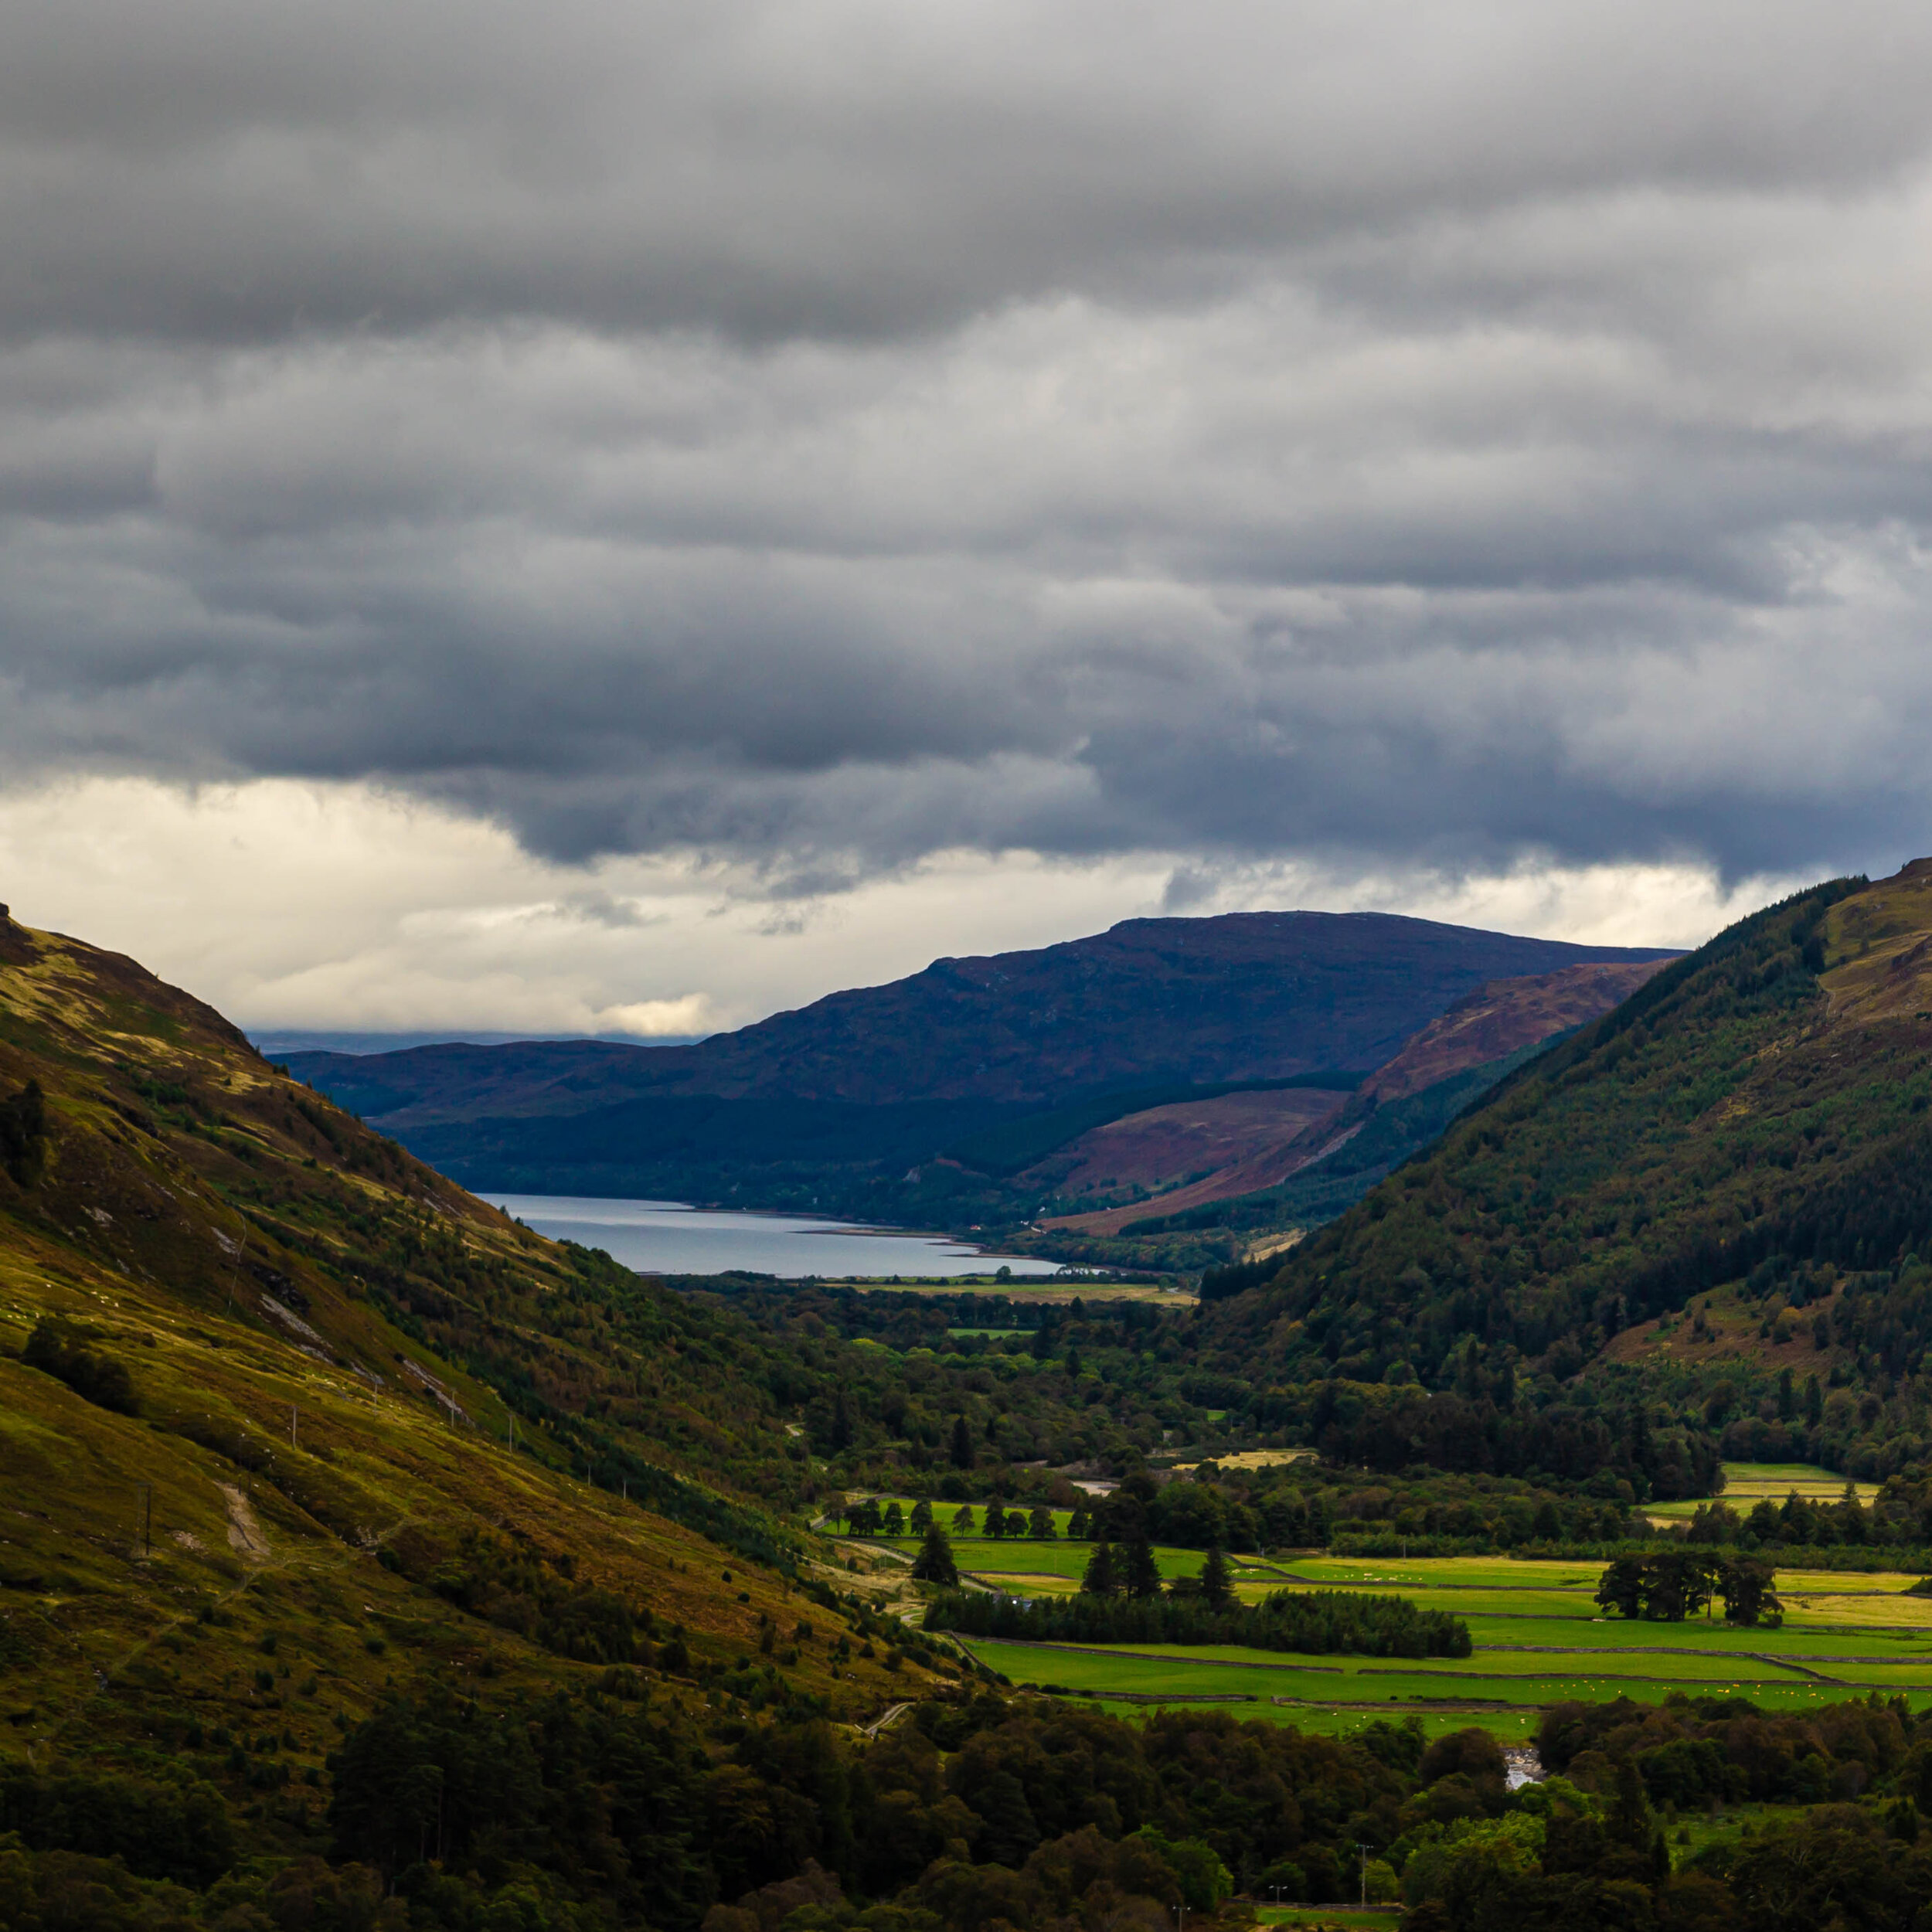 Loch Broom from Corrieshalloch Gorge Natural Nature Reserve